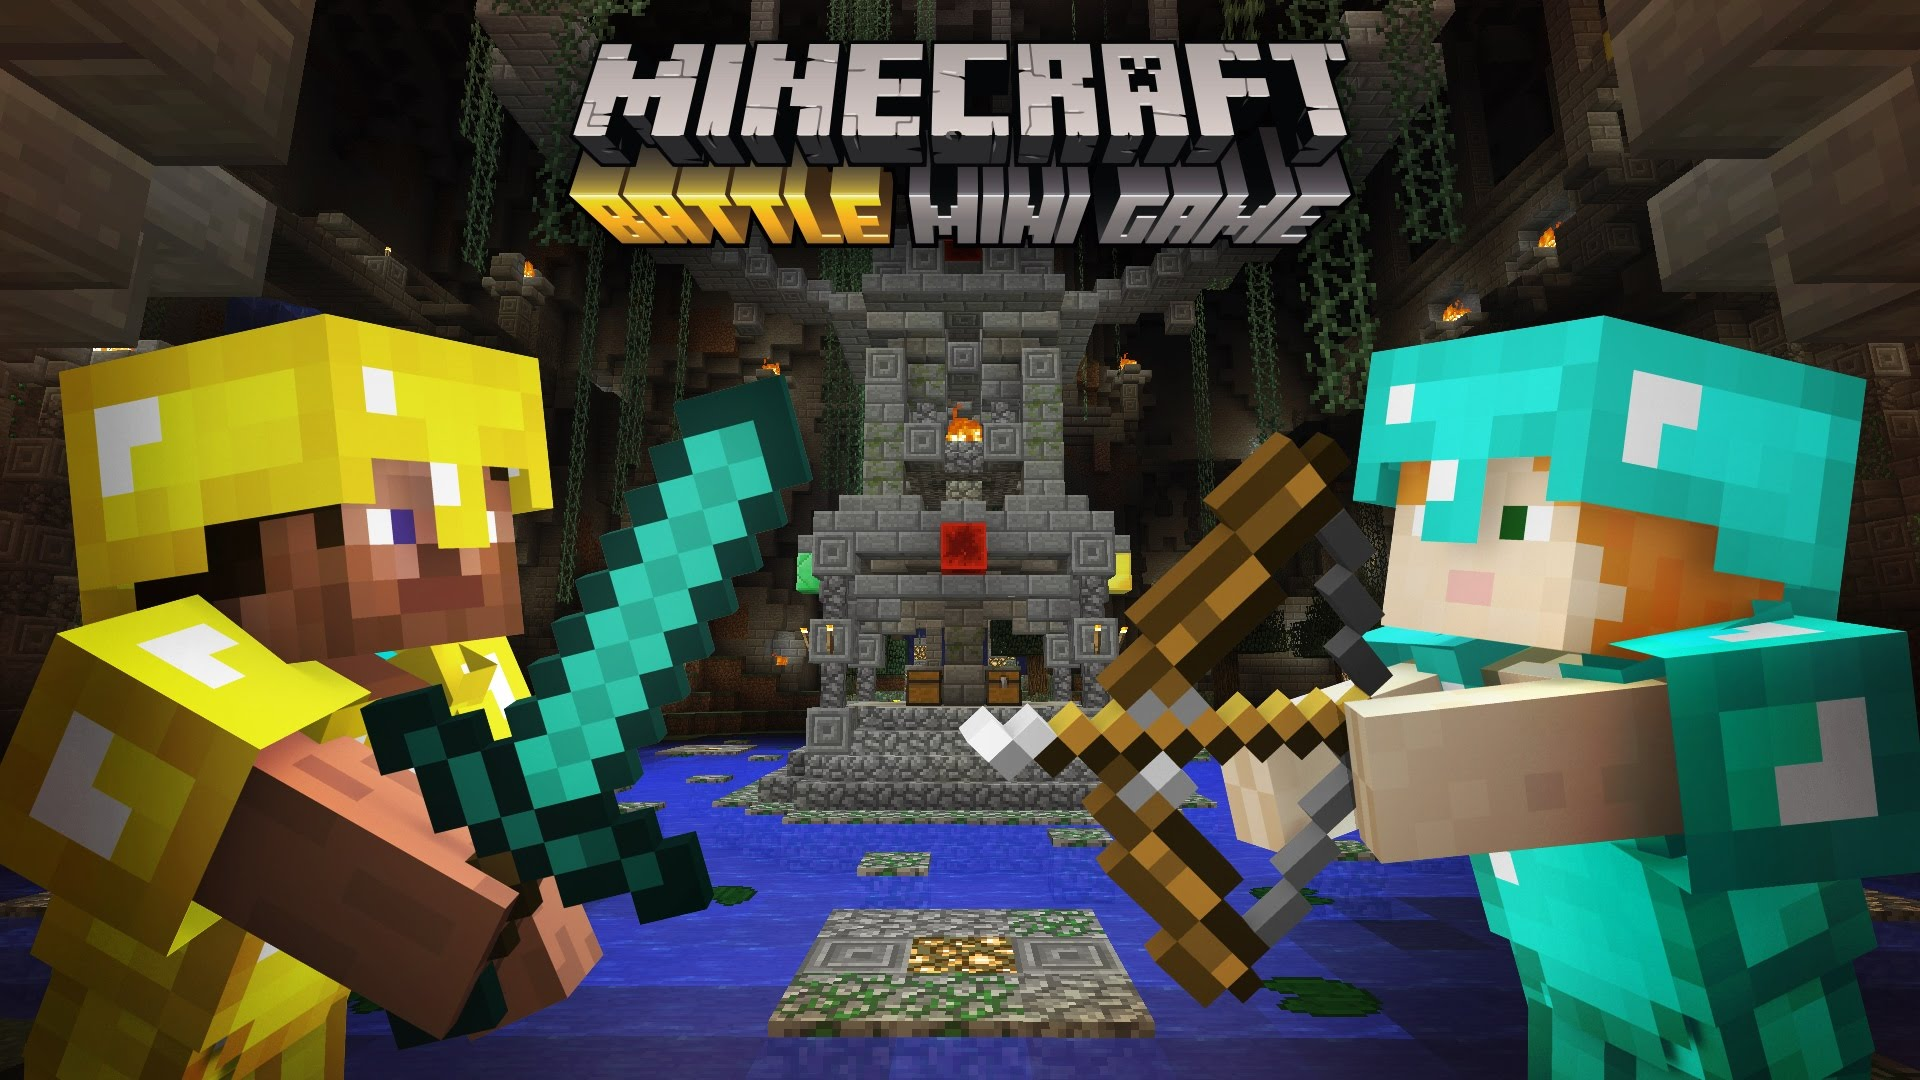 Minecraft Battle mini game trailer: coming free on June 21